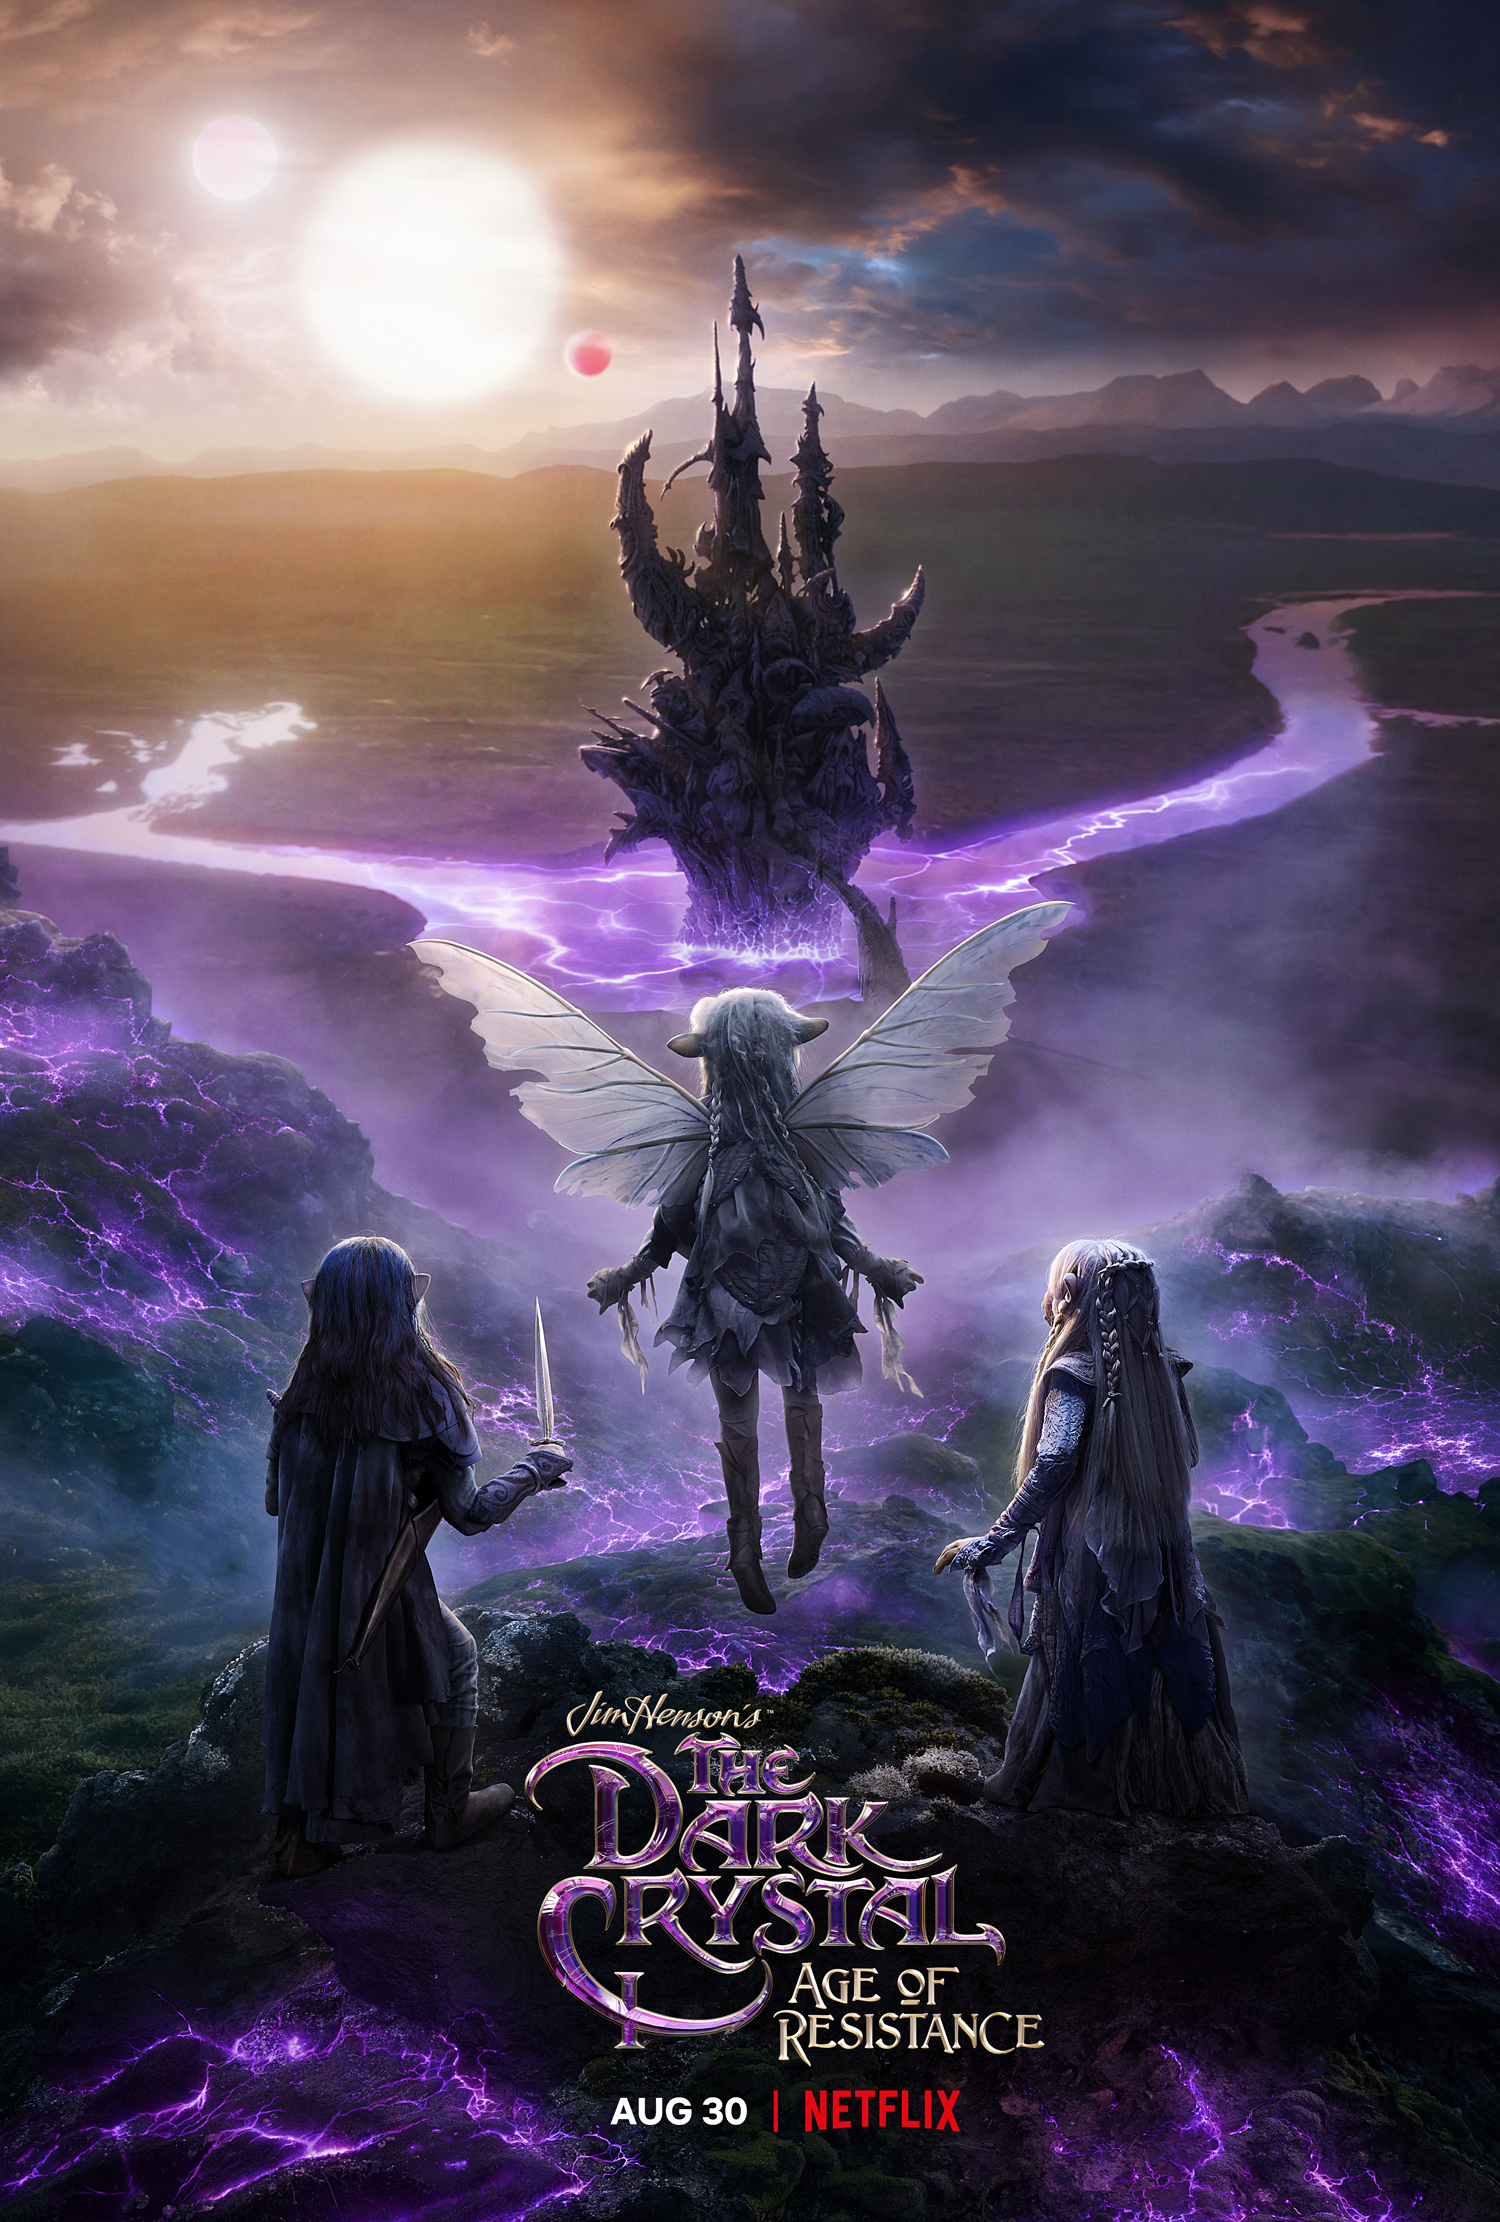 The promotional poster for Dark Crystal: Age of Resistance. The three main characters, the gelflings Deet, Rian, and Brea, standing on a rocky mountain surrounded by purple glowing filaments of energy, looking at the crystal of the castle in the background, as the three suns of Thra are setting beyond it.